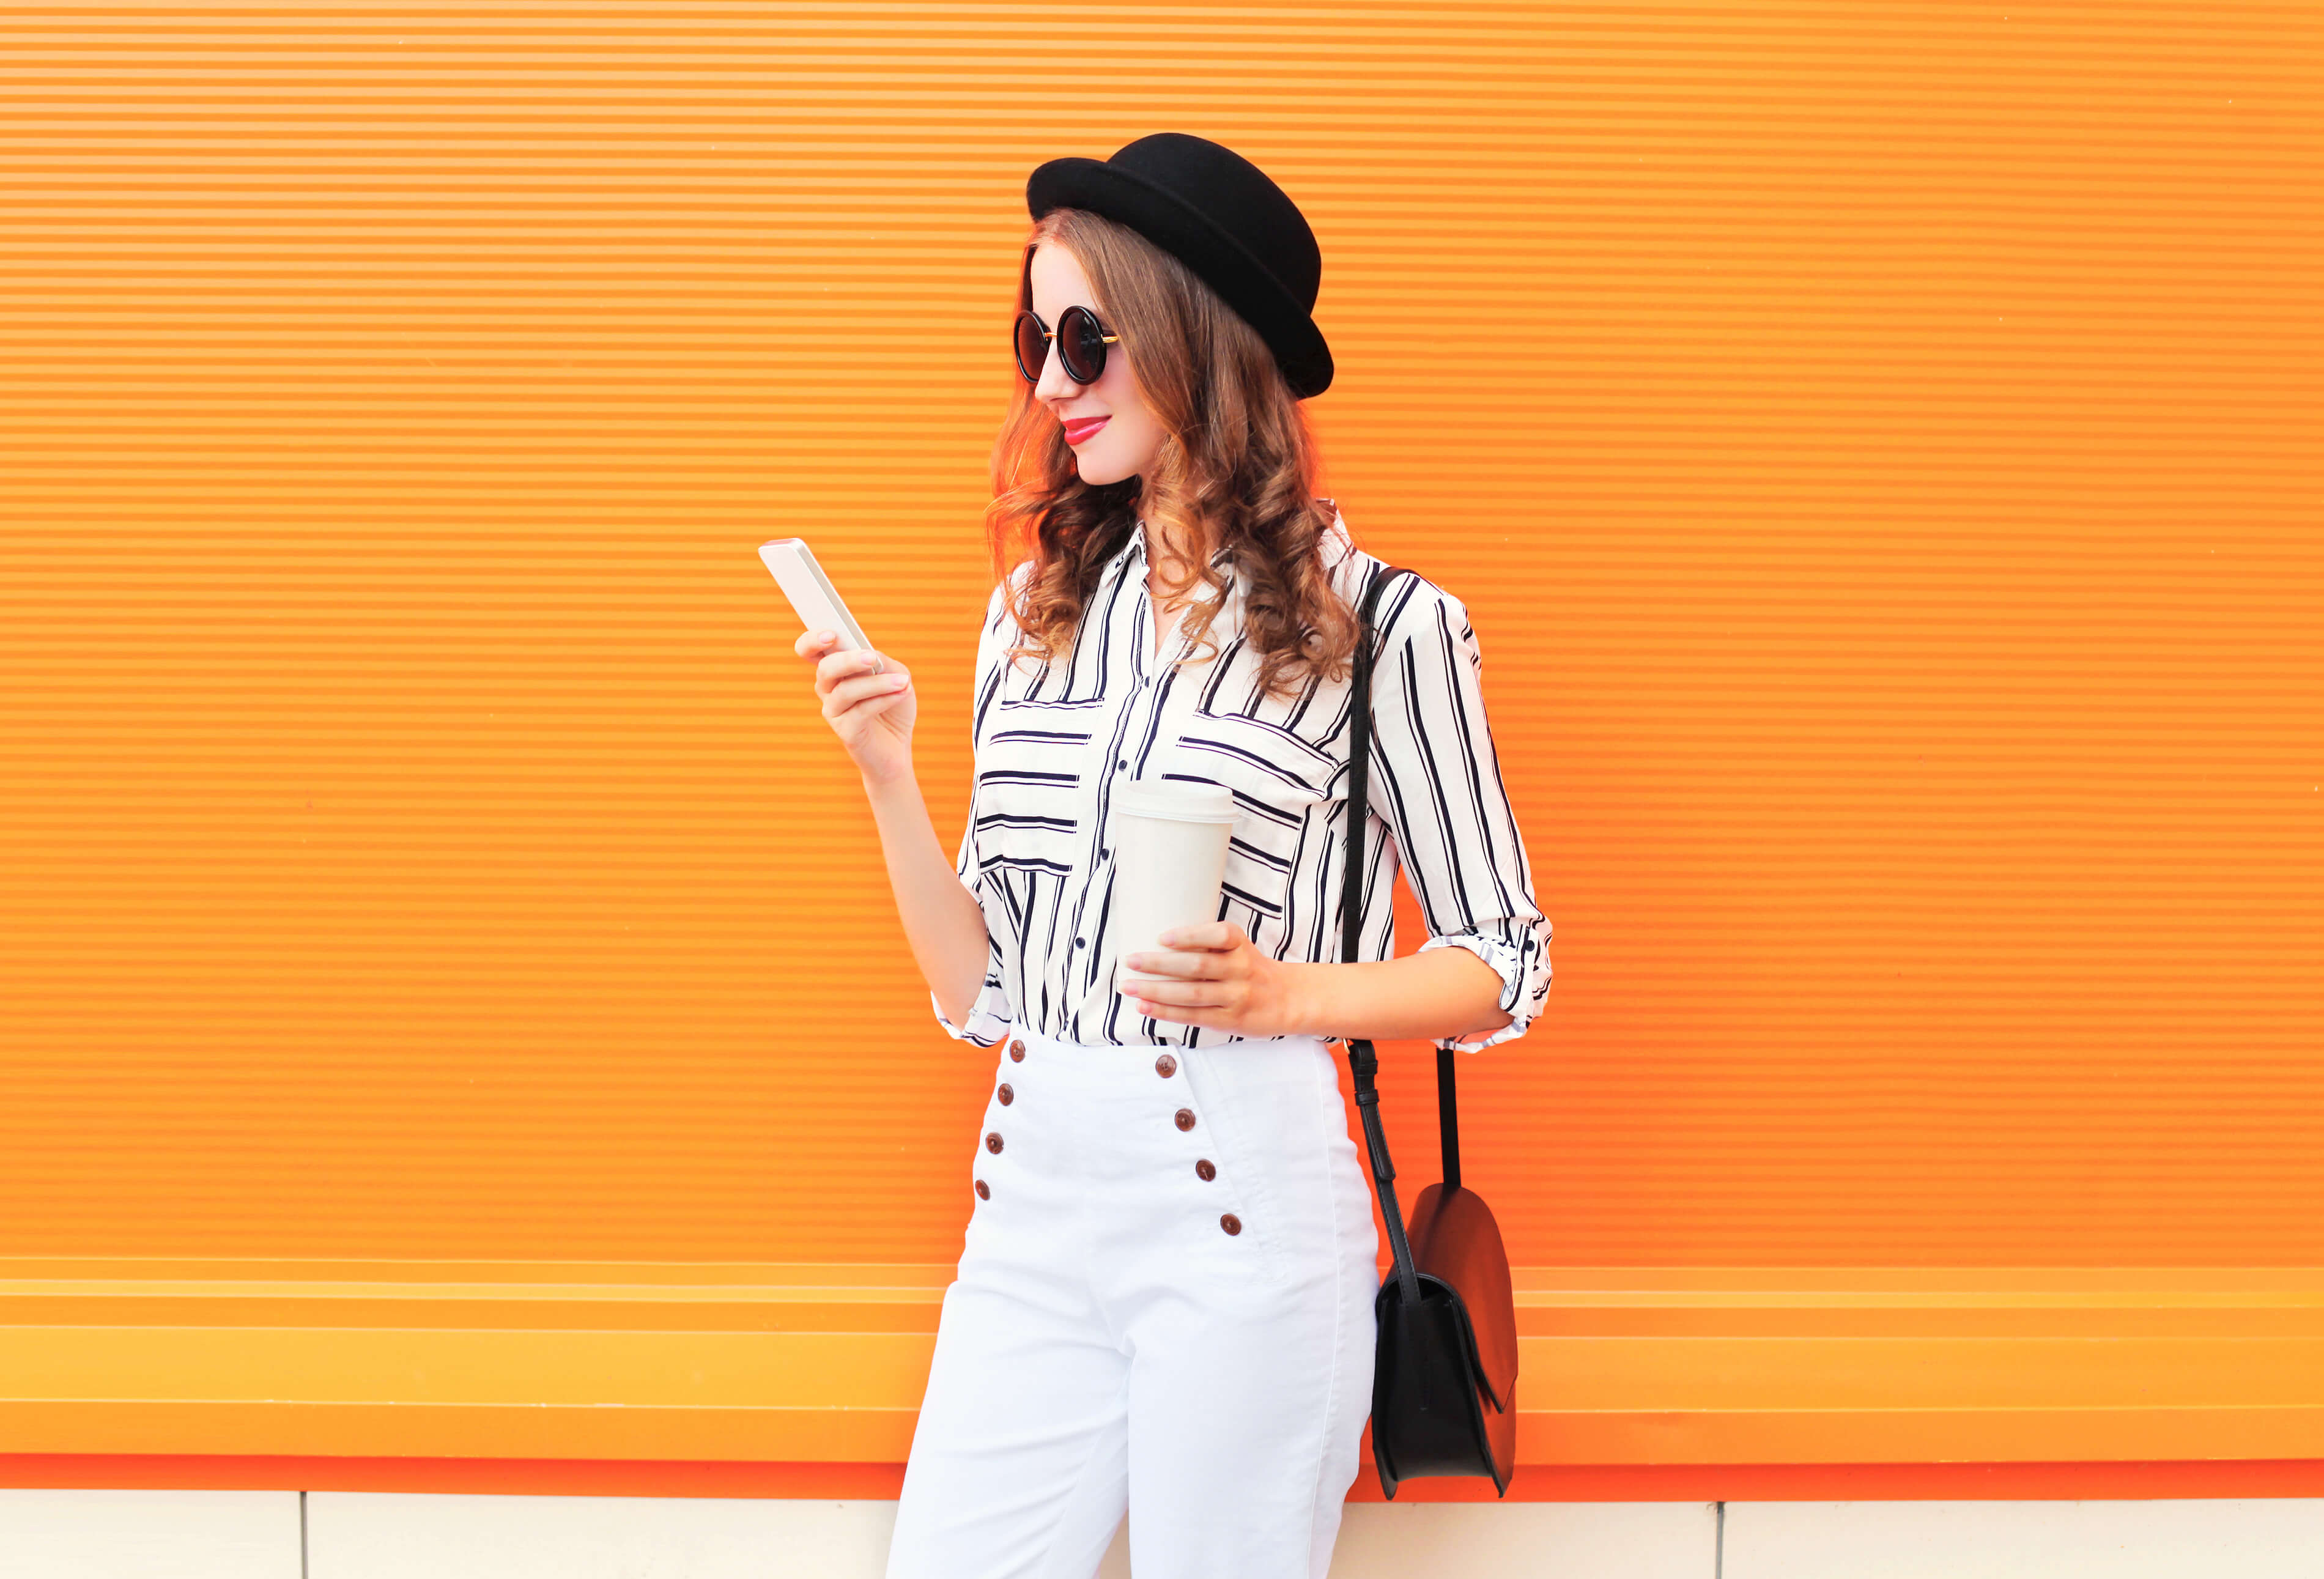 Woman in striped shirt looks at her smartphone in front of a bright orange background. Manage your personal branding better with Activate Worldwide.